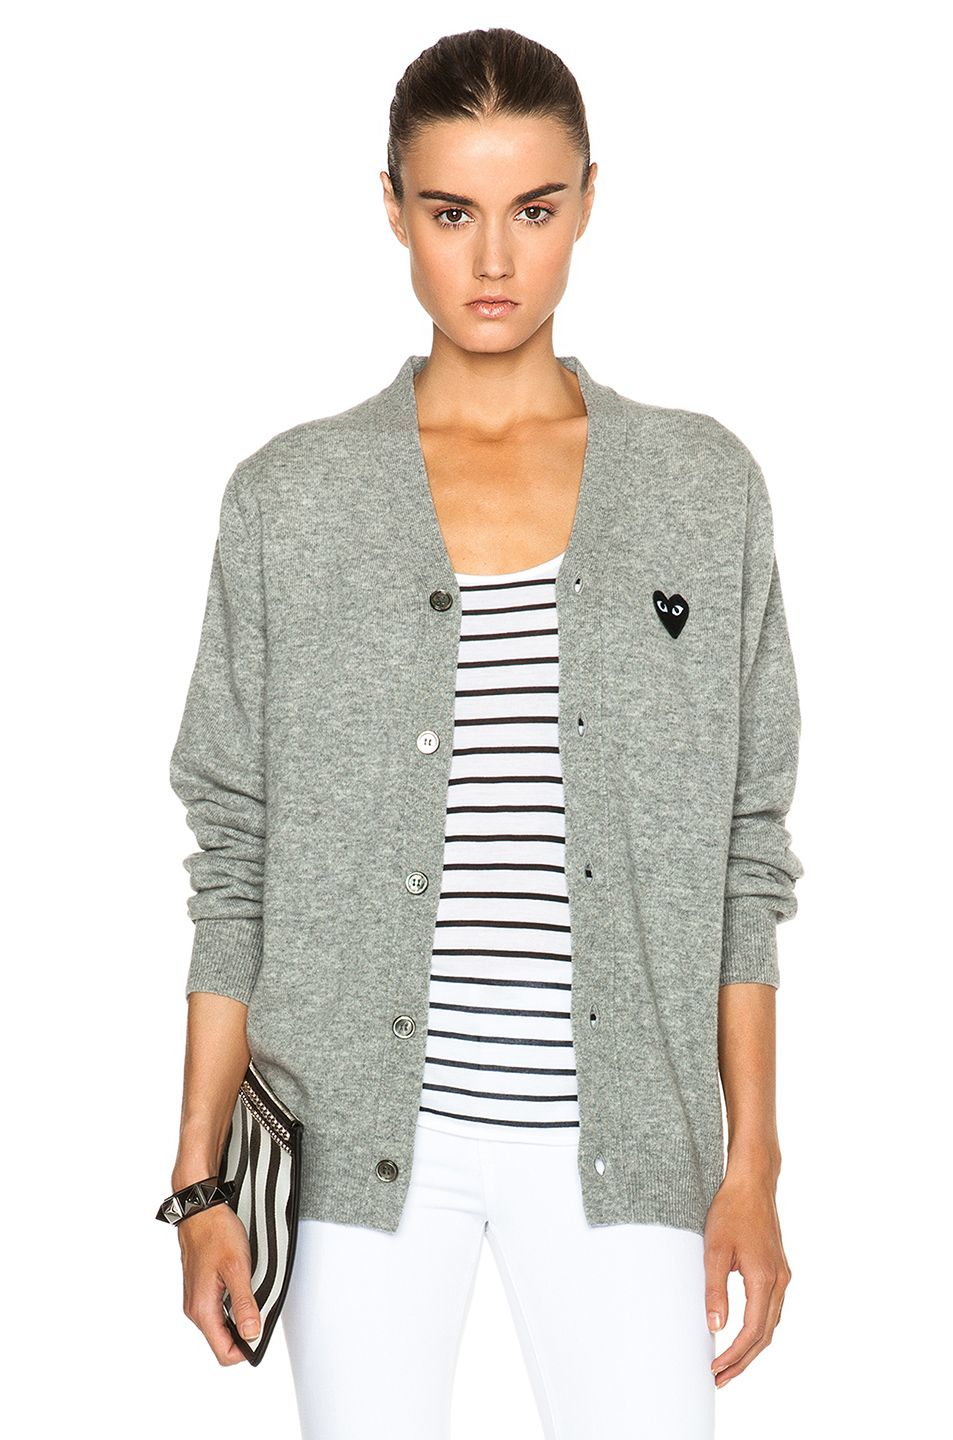 38a050691581 Comme Des Garcons PLAY Wool Black Heart Emblem Cardigan in Light Grey